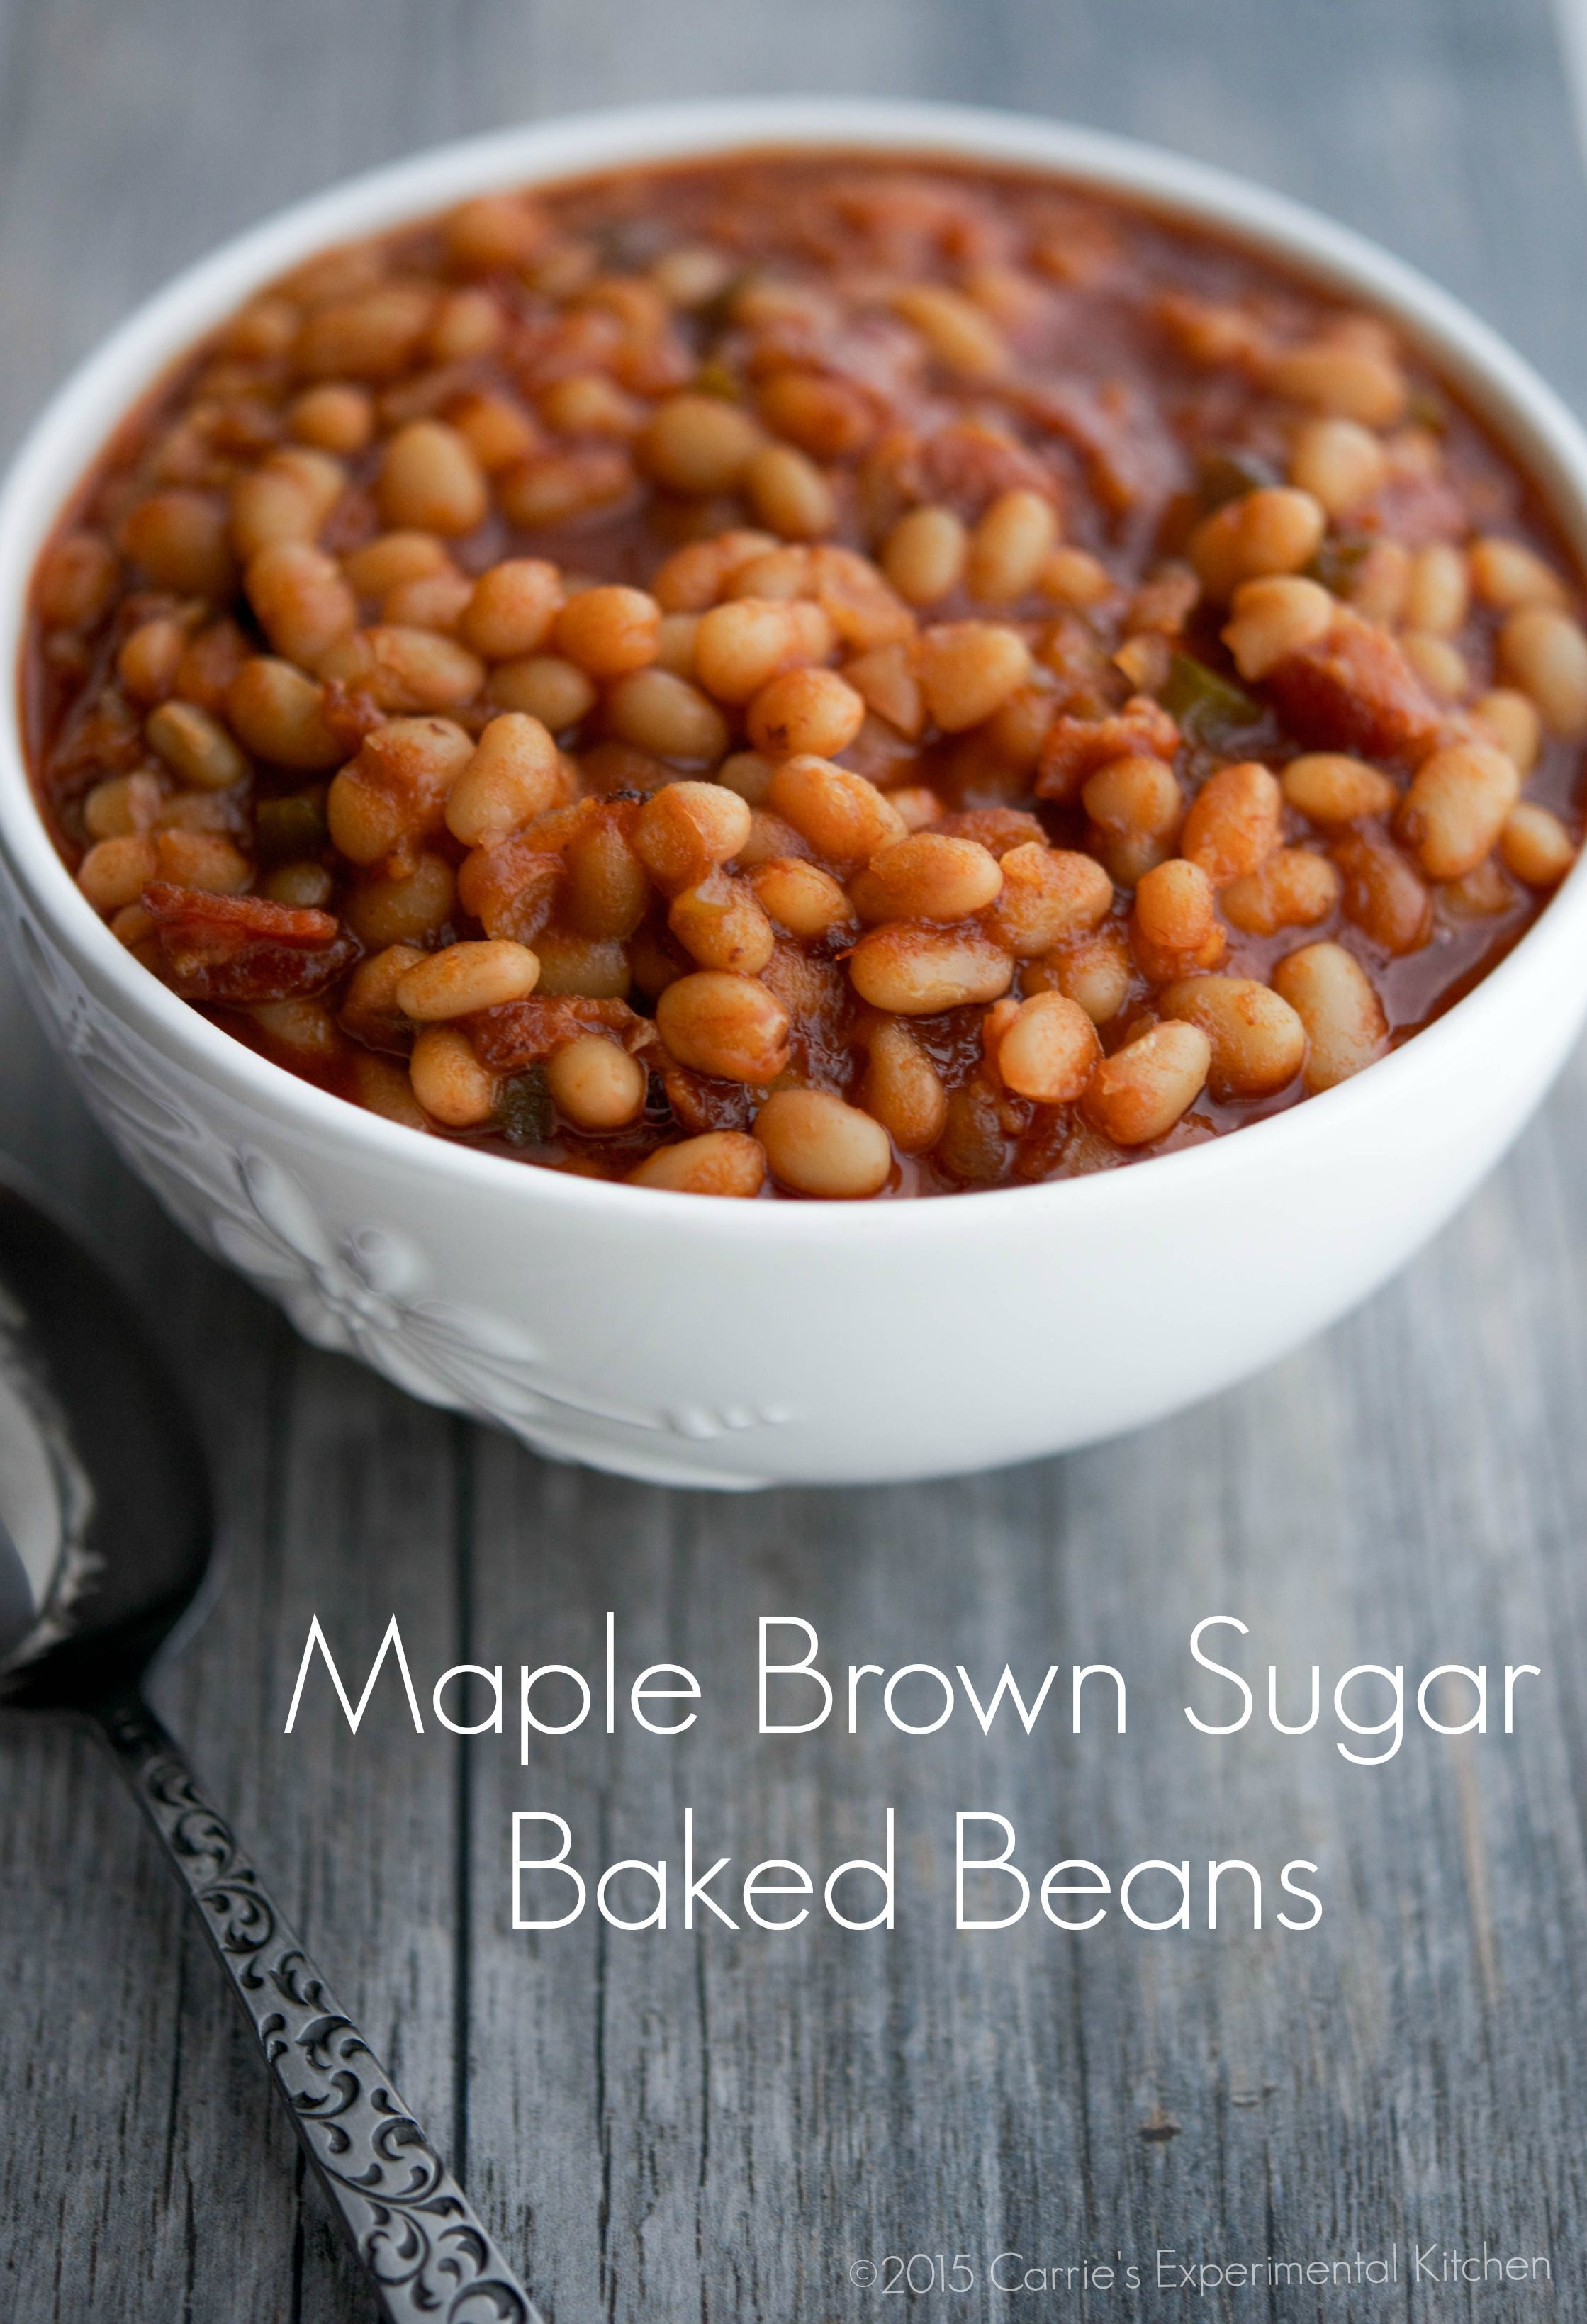 Maple Brown Sugar Baked Beans Maple Brown Sugar Baked Beans | Carrie's Experimental KitchenMaple Brown Sugar Baked Beans | Carrie's Experimental Kitchen